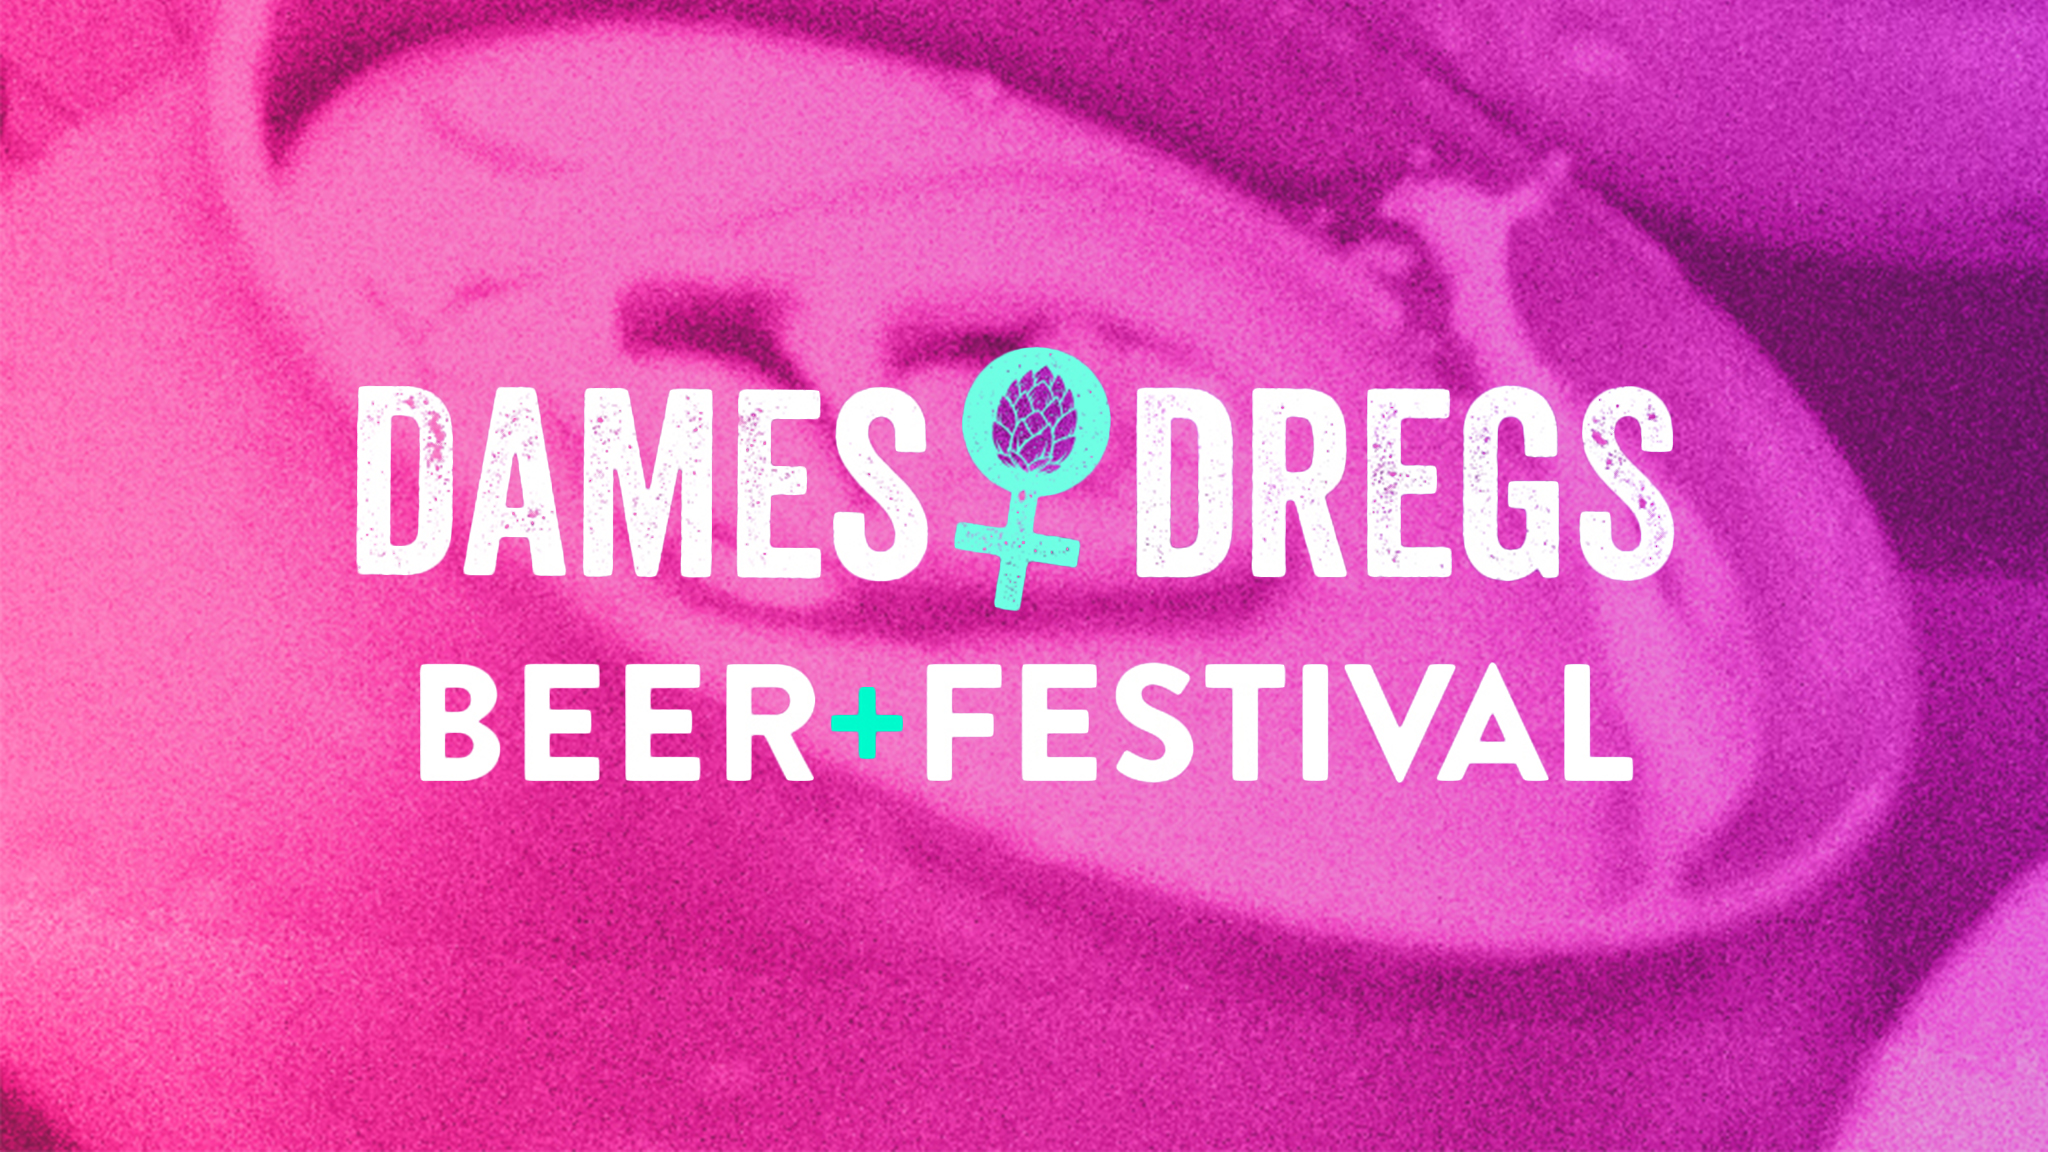 Dames & Dregs